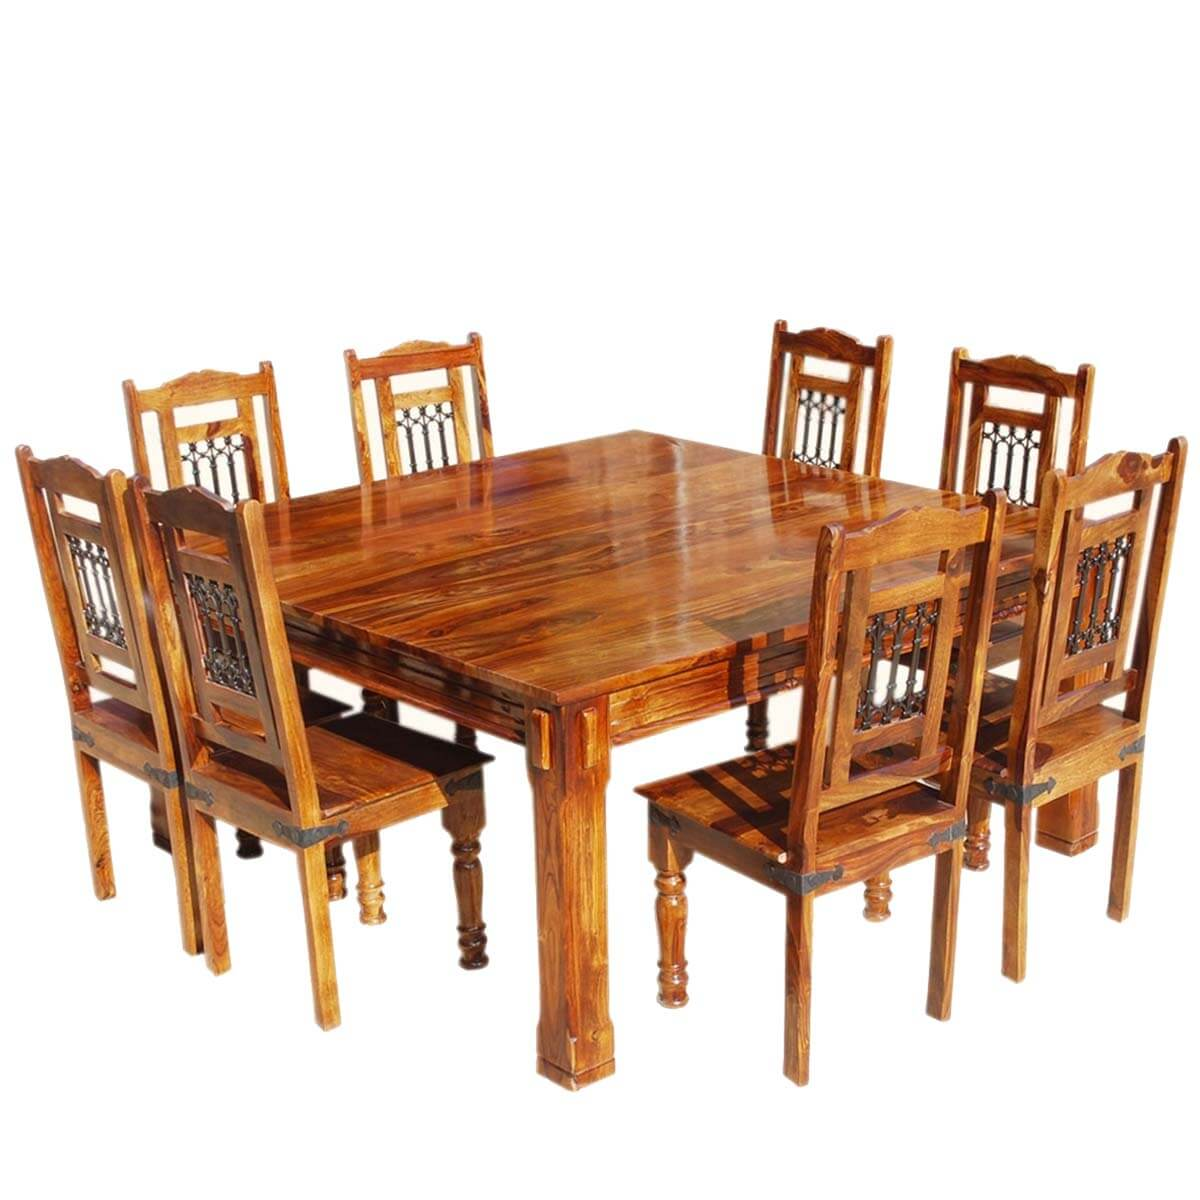 rustic dining table and chairs cedar adirondack sale transitional solid wood square set